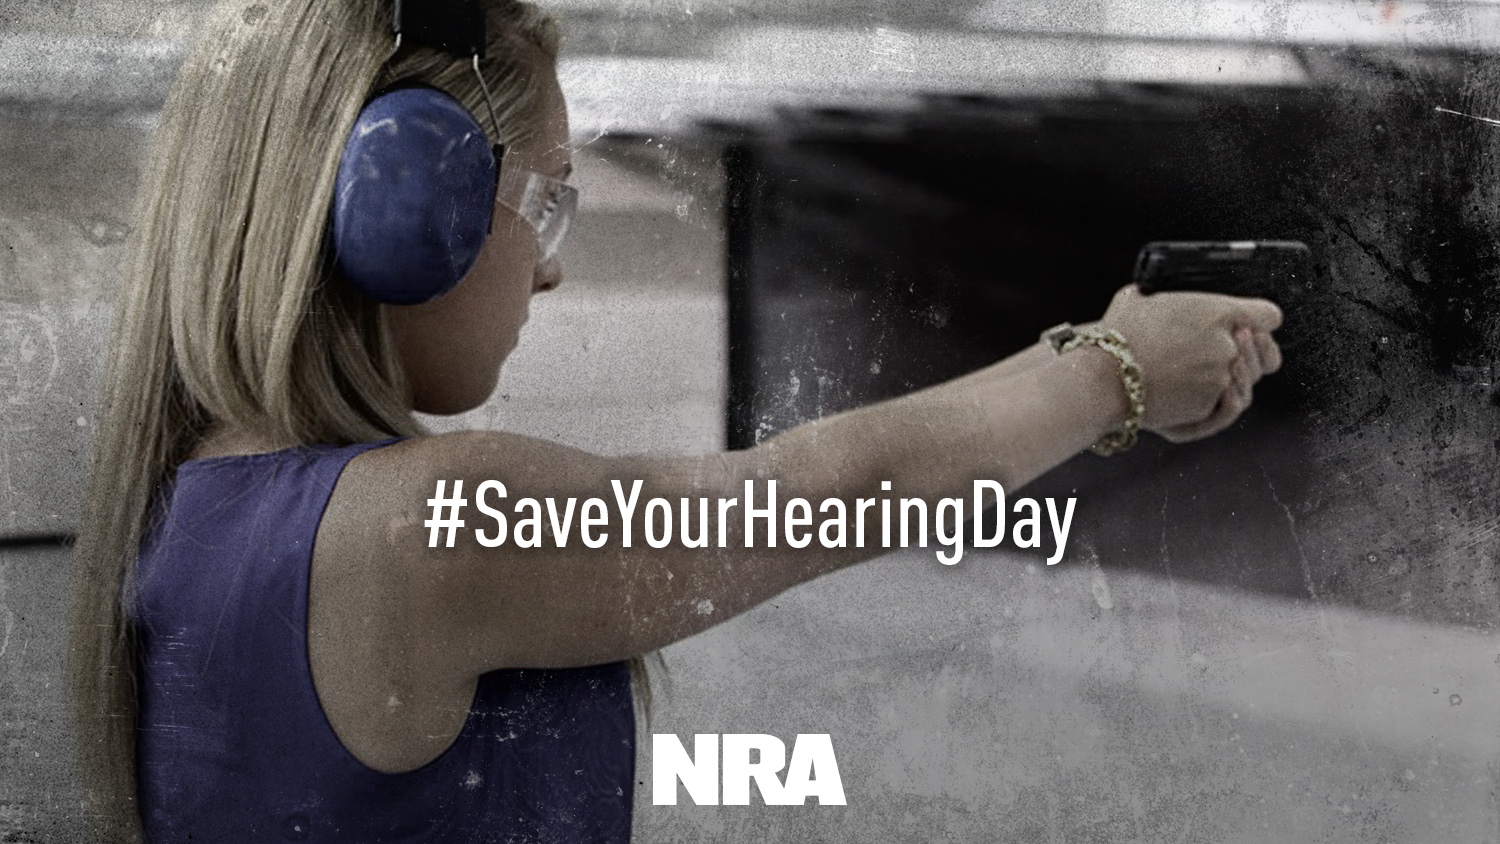 Don't forget about your ears!